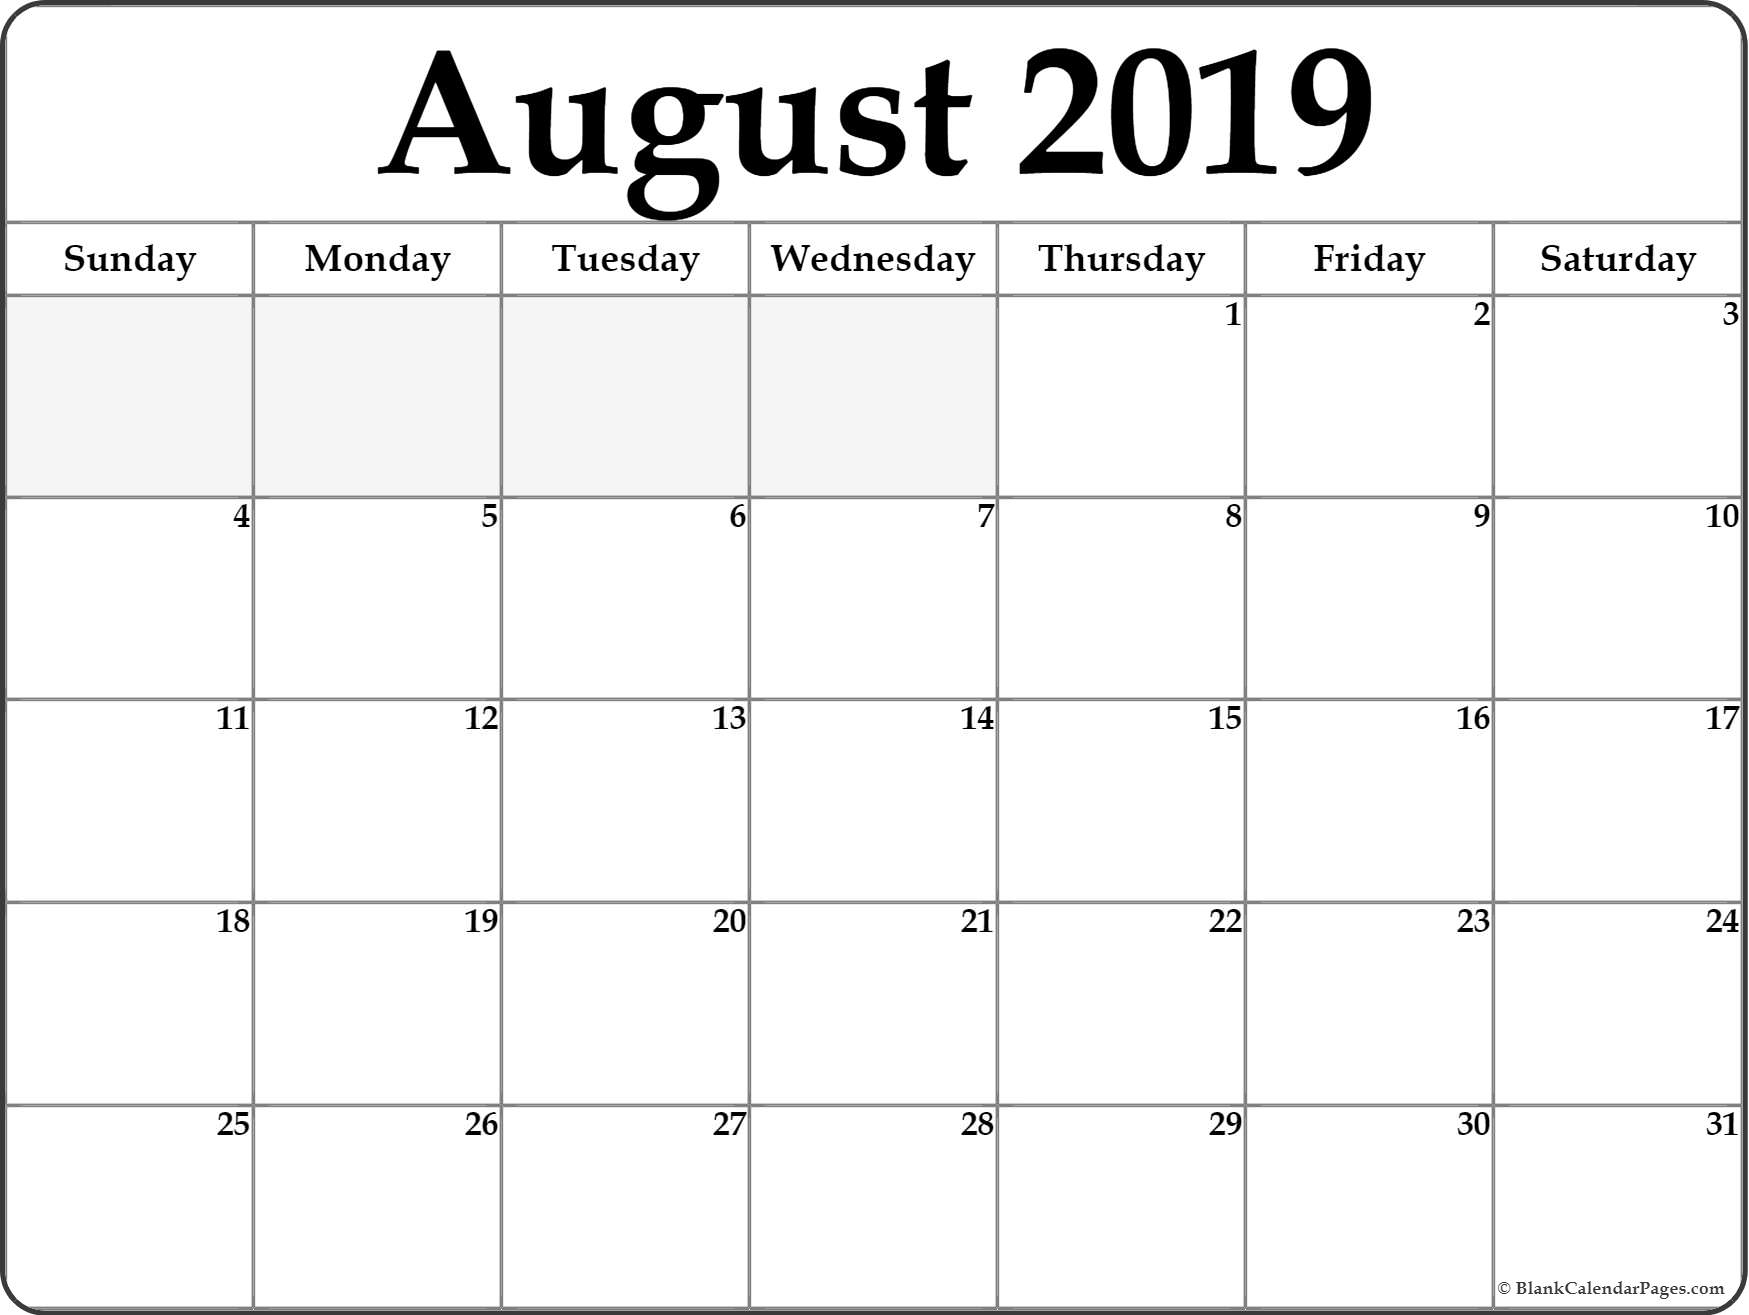 August 2019 Calendar | Free Printable Monthly Calendars for Blank Calendars For August